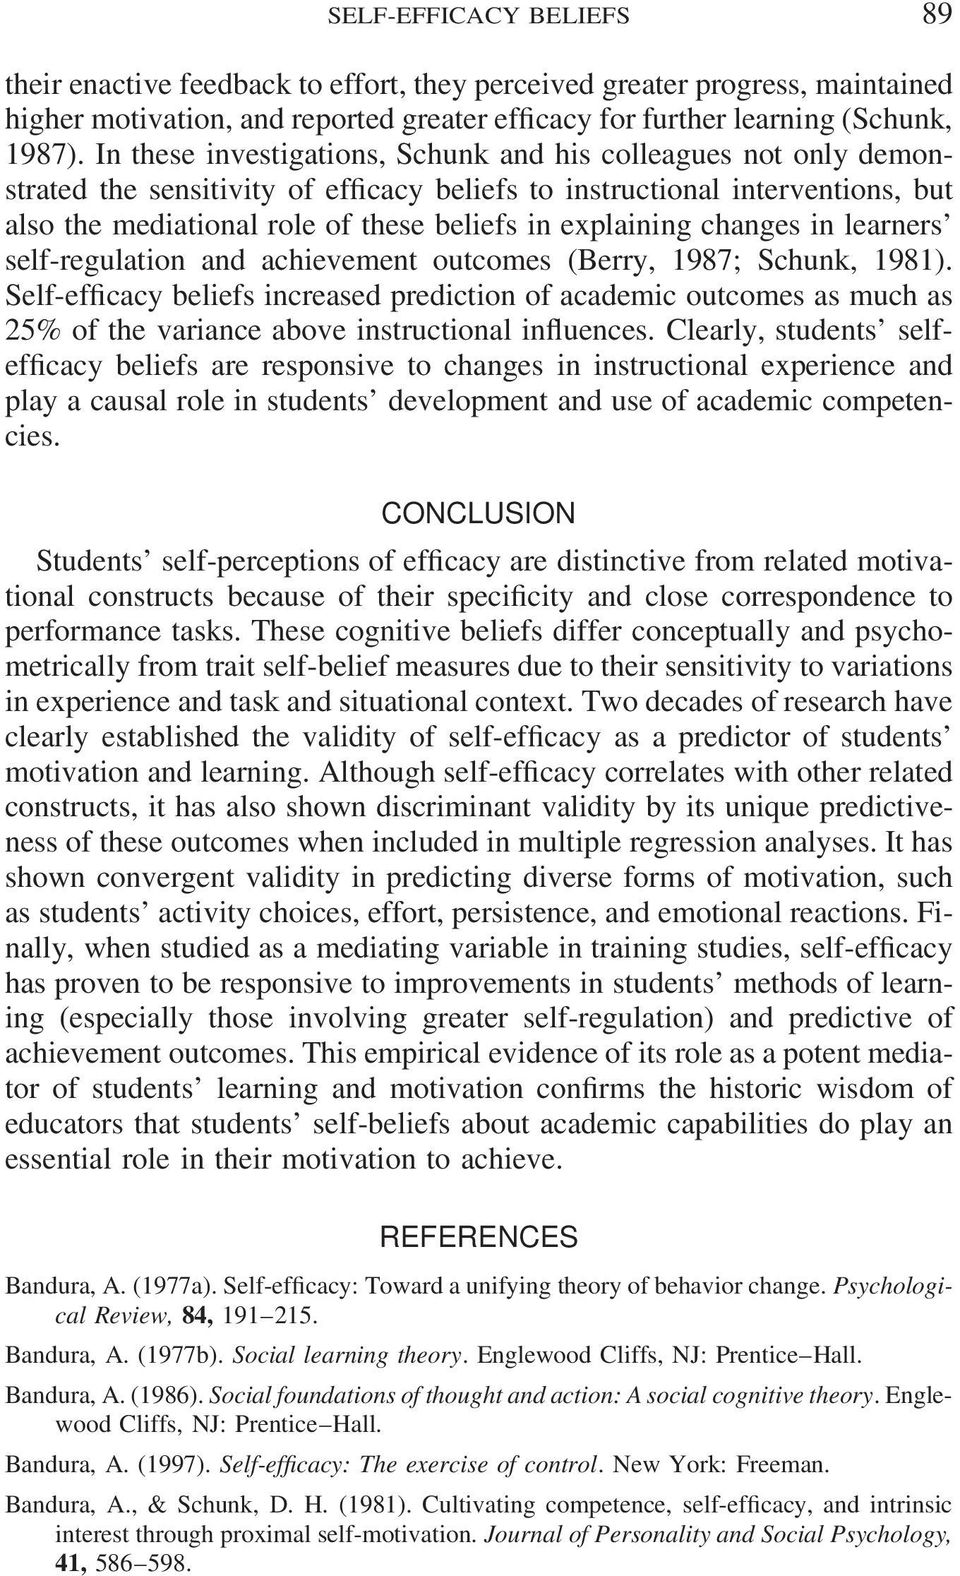 explaining changes in learners self-regulation and achievement outcomes (Berry, 1987; Schunk, 1981).